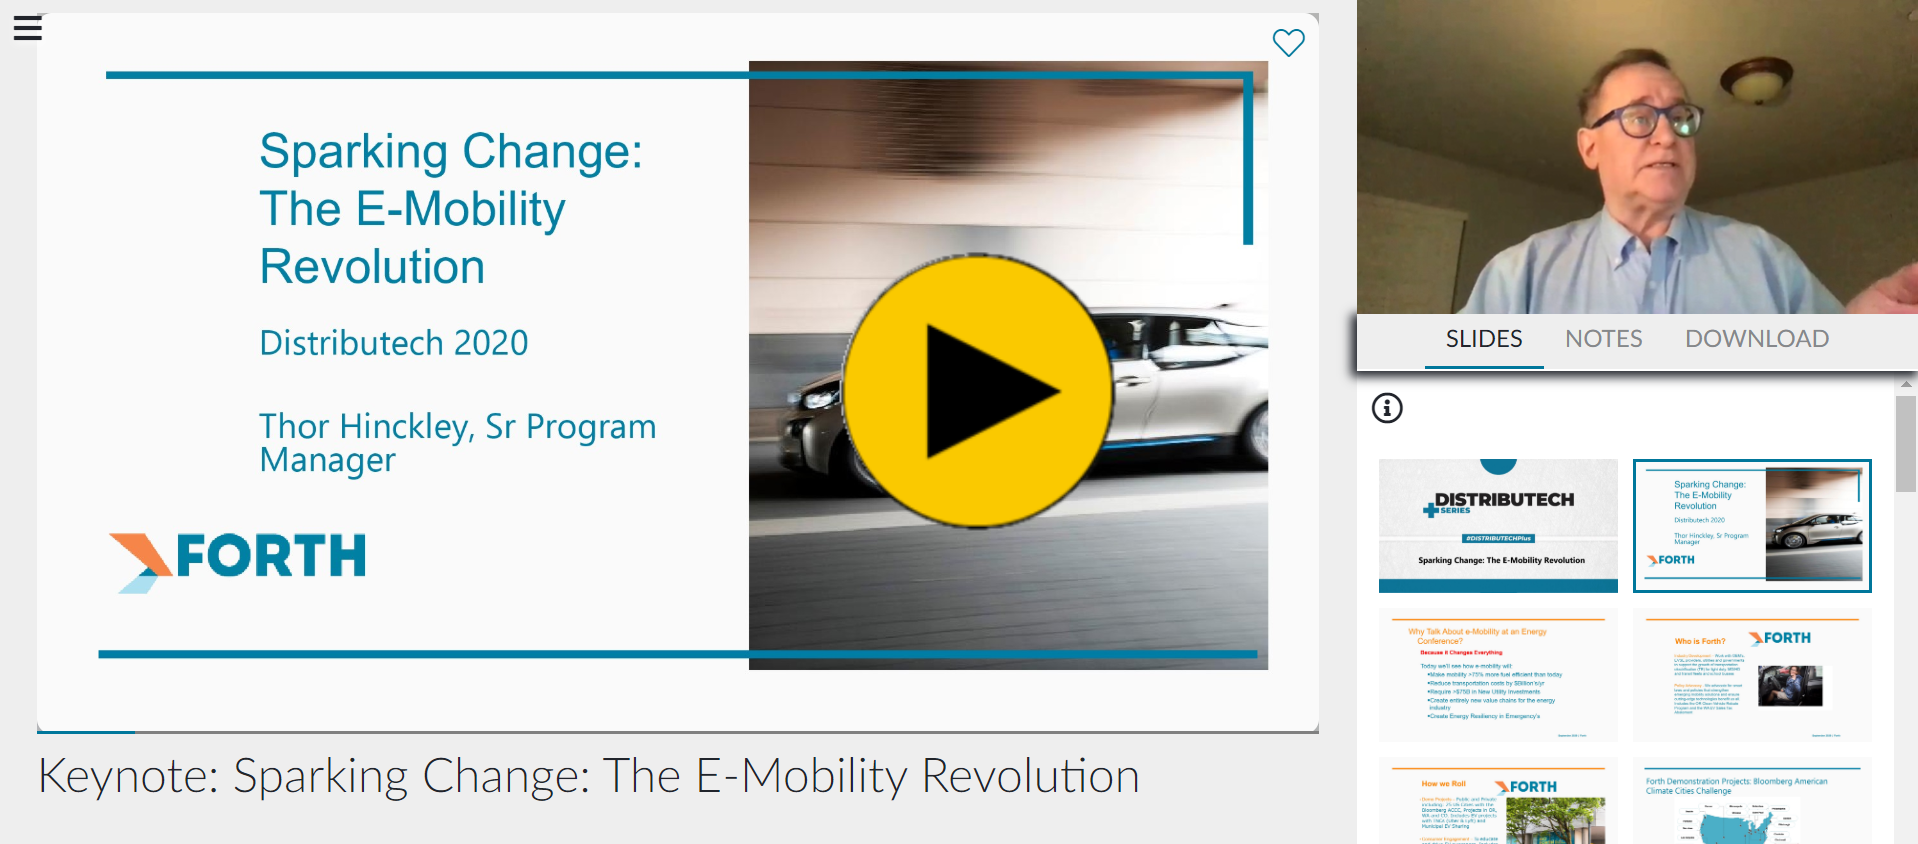 DTECH+ - Keynote: Sparking Change: The E-Mobility Revolution